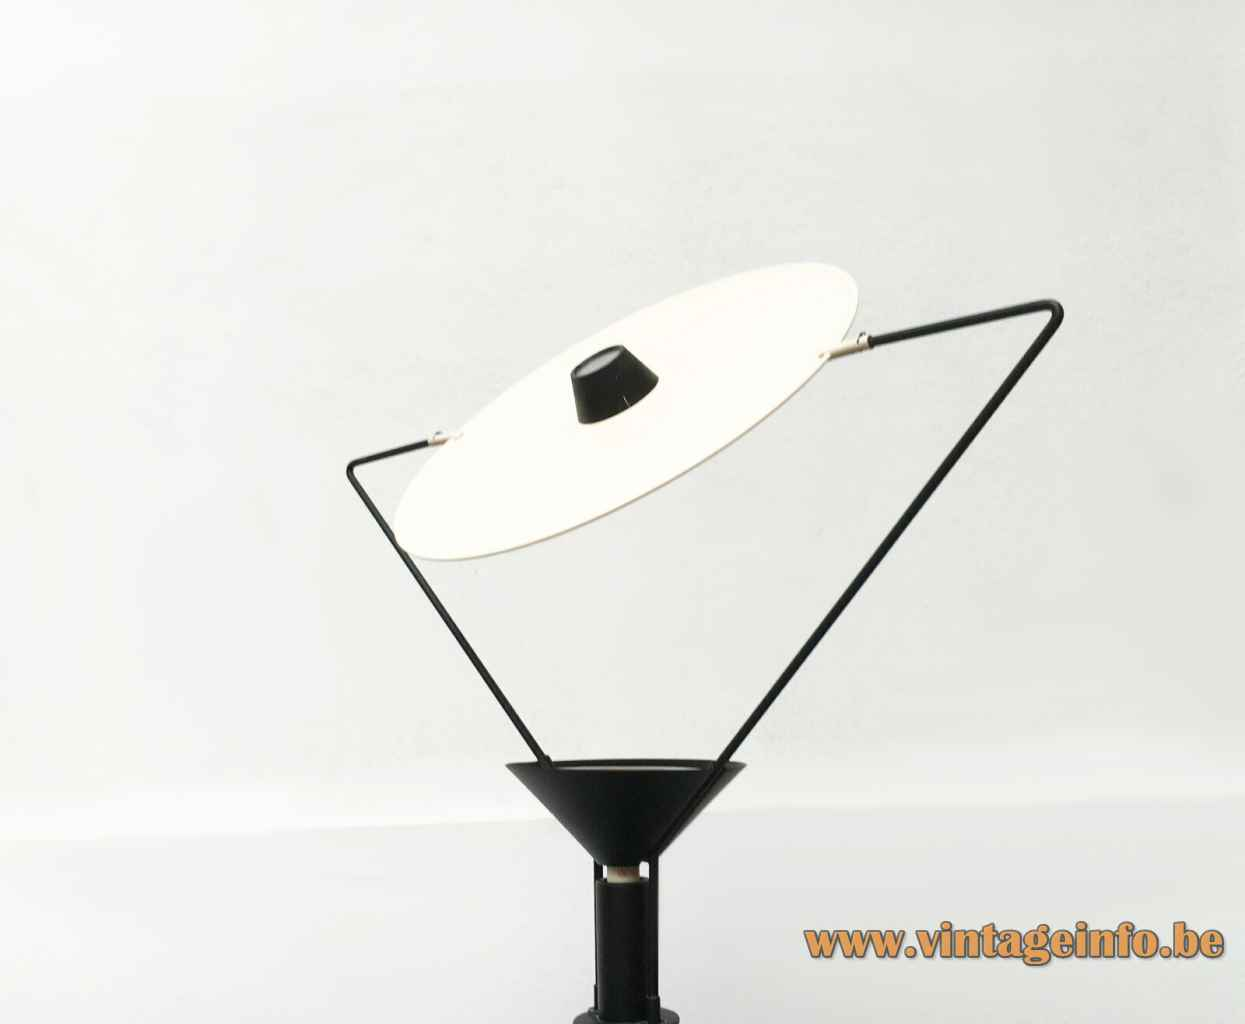 Artemide Polifemo floor lamp 1983 design: Carlo Forcolini round base long rod disc lampshade 1980s Italy